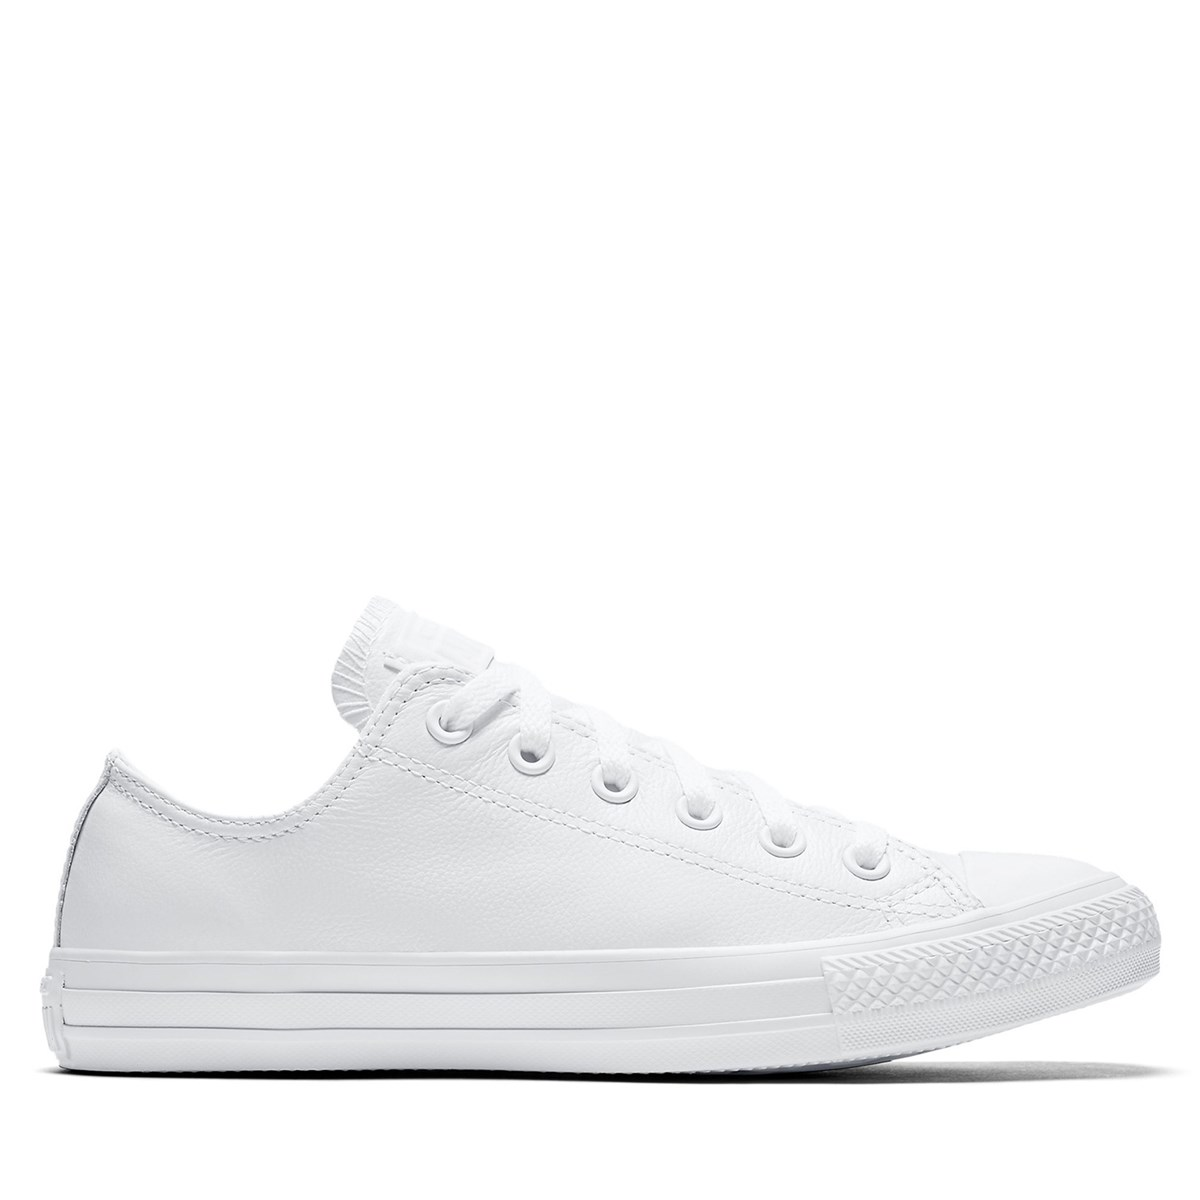 828e1691061c Chuck Taylor All Star Mono Leather Low Top Sneaker. Previous. default view   ALT1  ALT2